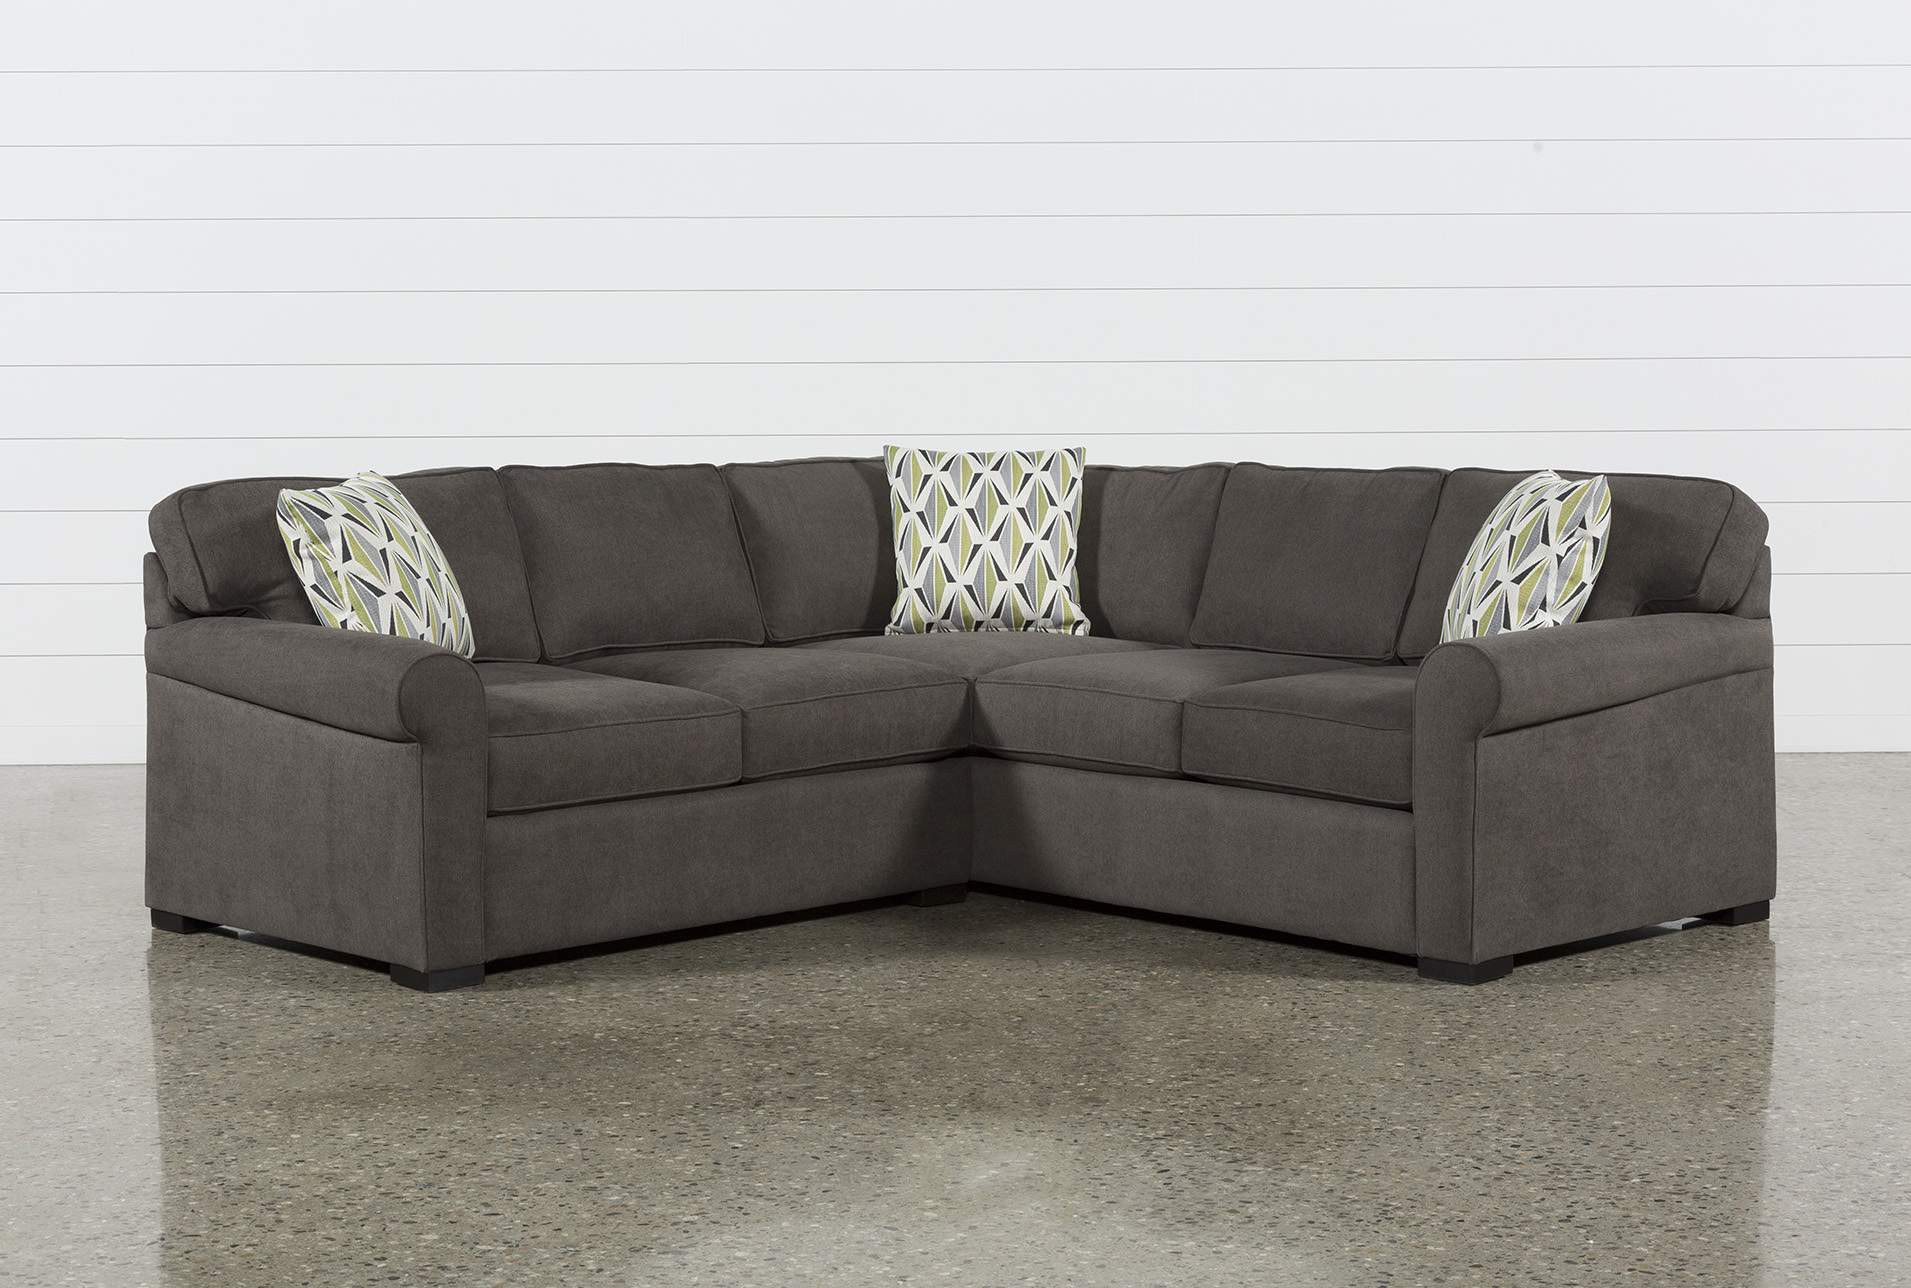 Extra seating with small   sectional sofa beds